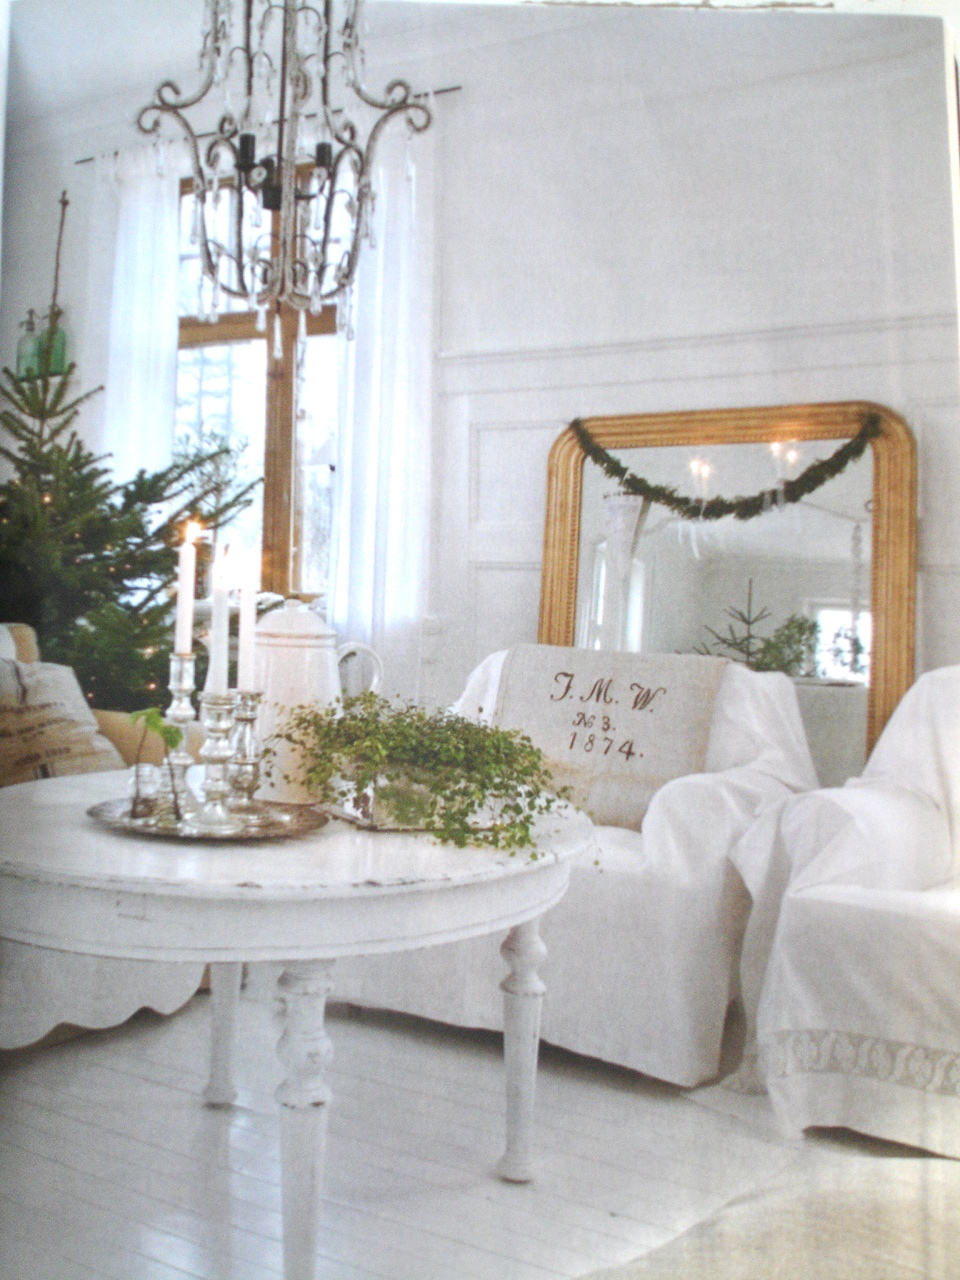 Starting On Page 36 Is A 13 Page Spread With Shabby Whites Holiday Decorating Omg Best Ever Here S A Sneak Peek